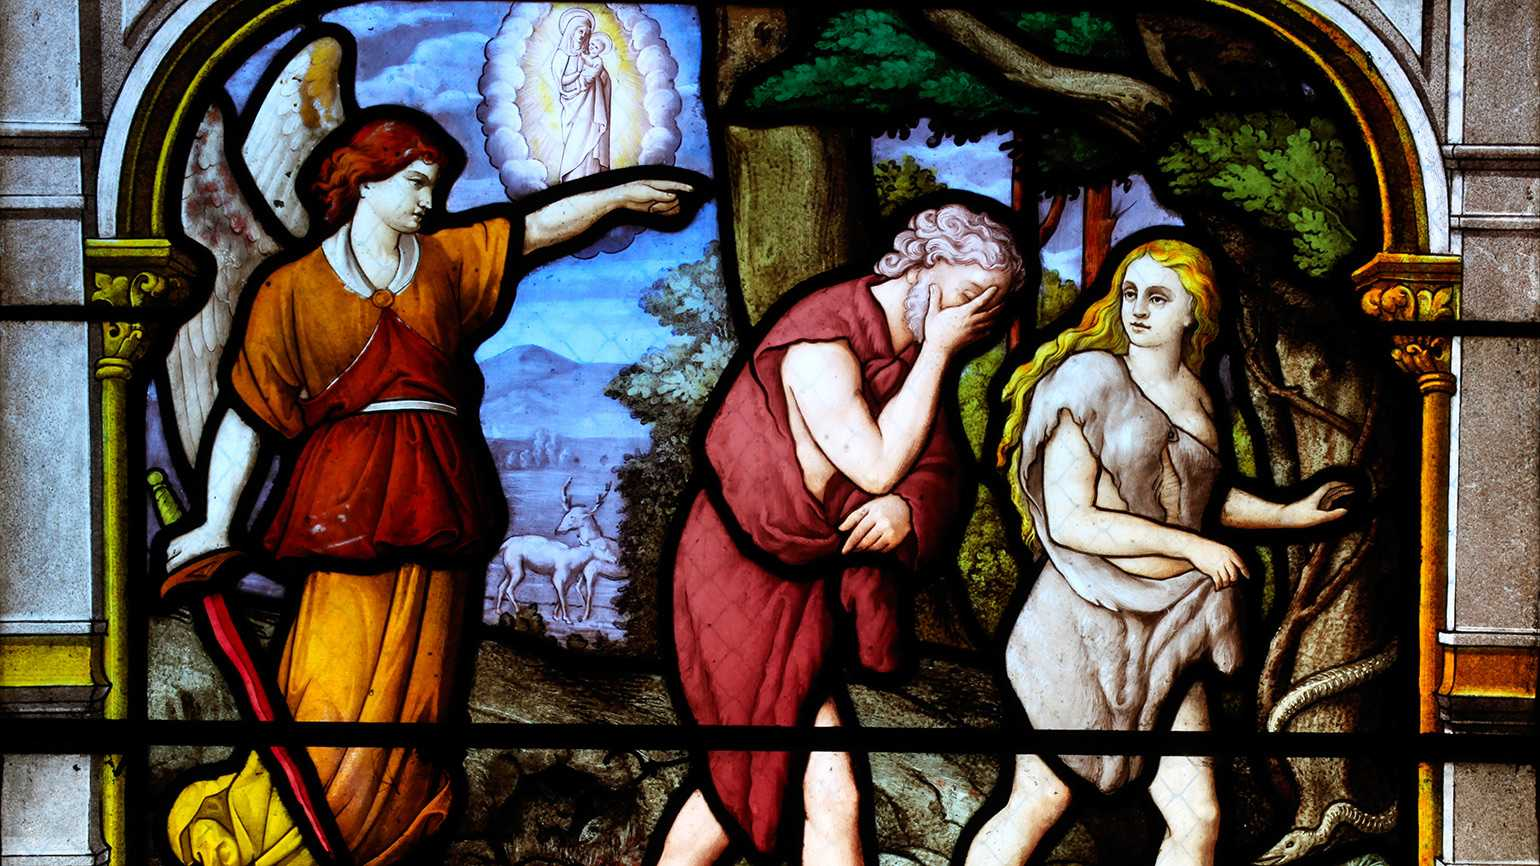 Adam and Eve being banished from the Garden of Eden, depicted in stained glass